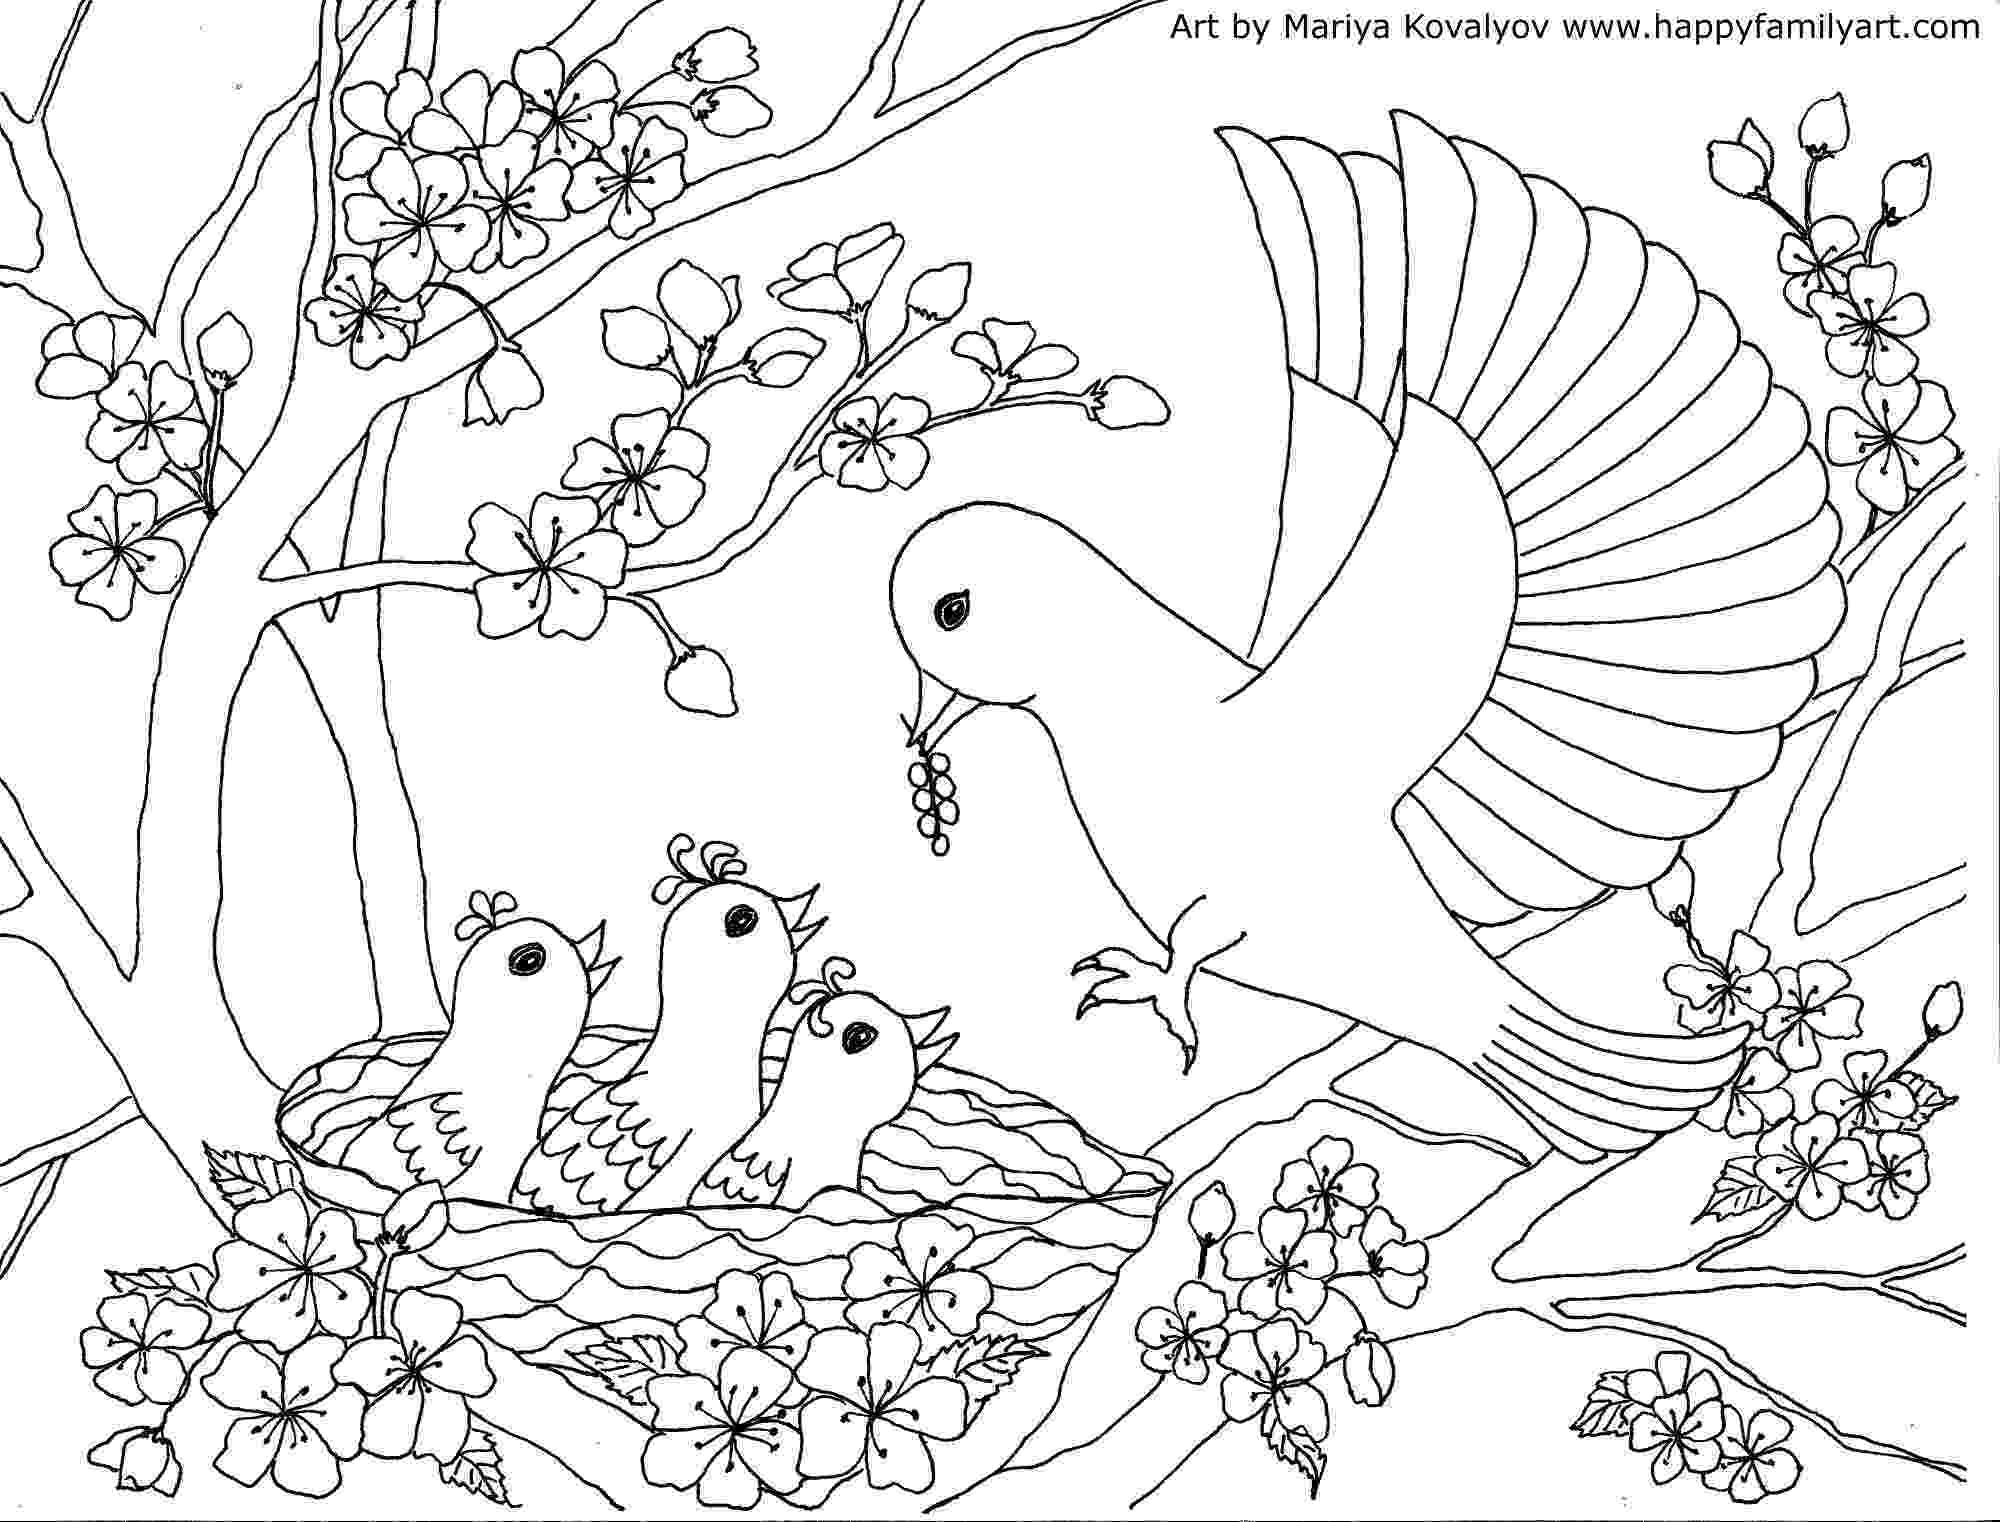 bird coloring pages to print kids page birds coloring pages printable birds coloring bird coloring to print pages